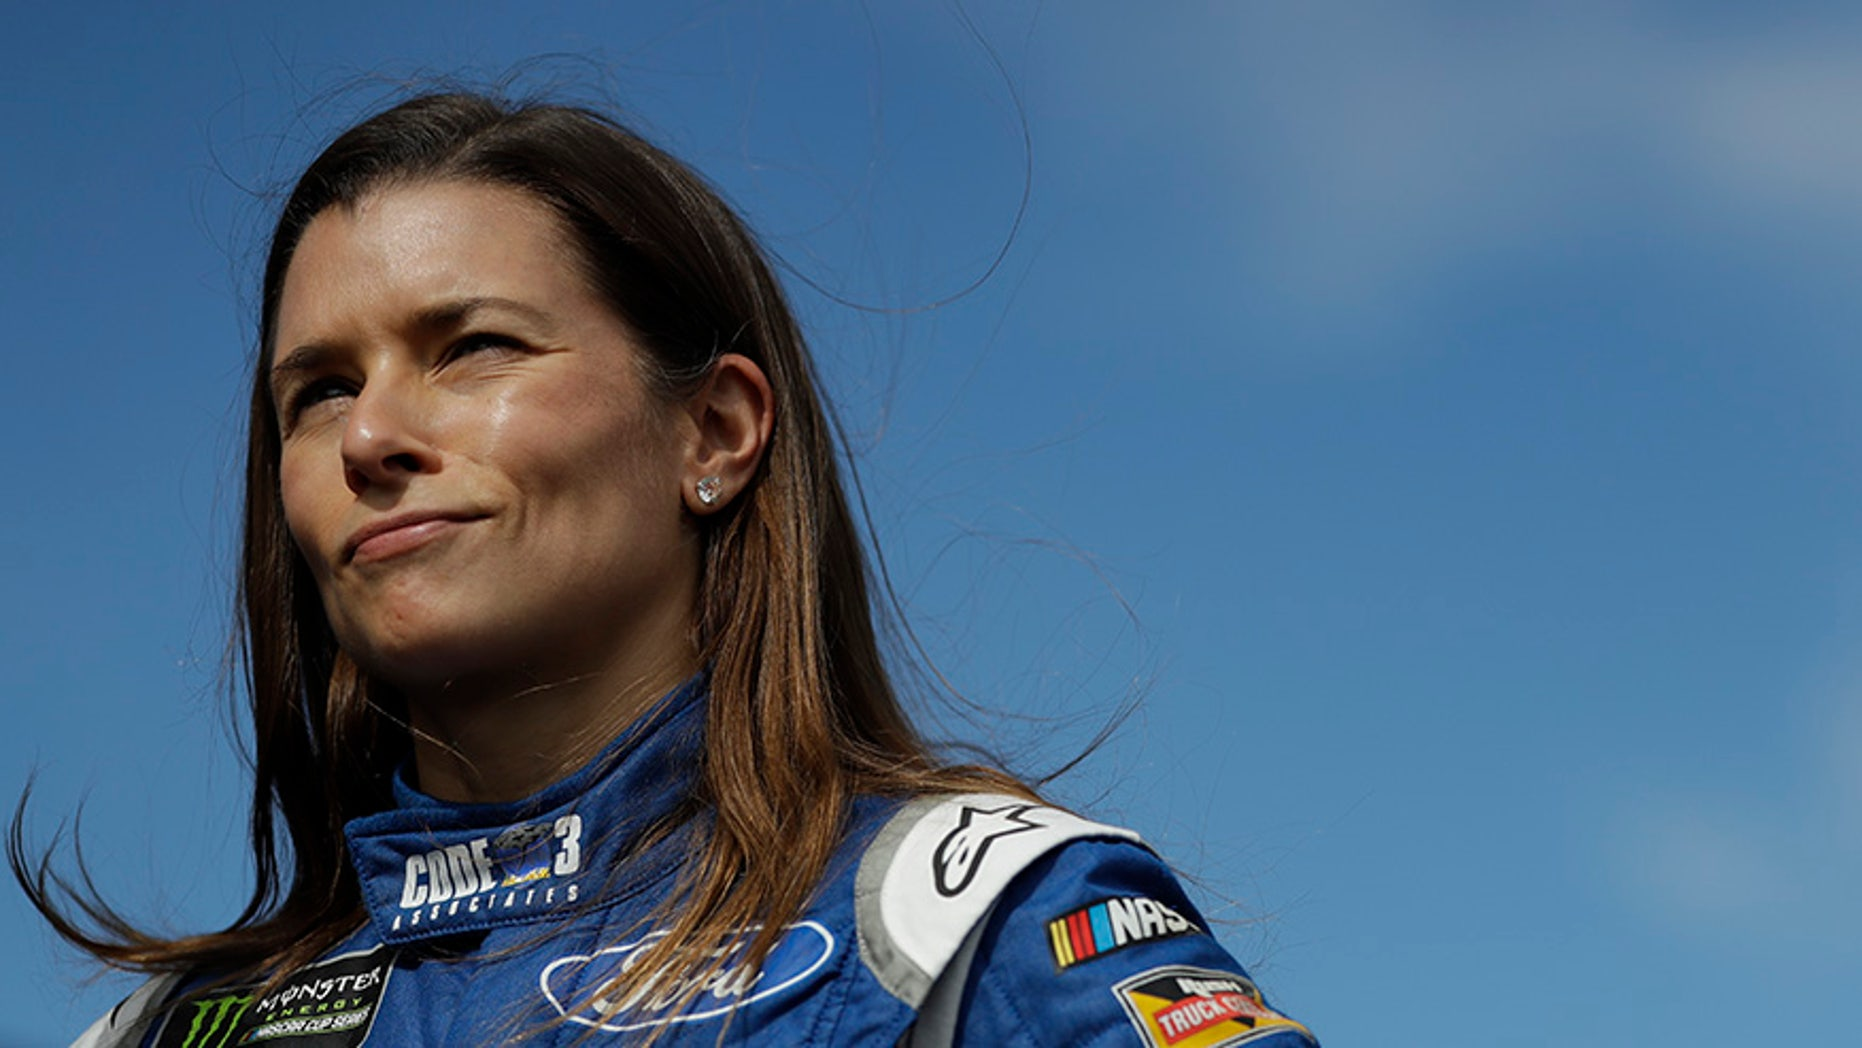 Danica Patrick stands near the garage area after practice for Sunday's NASCAR Cup series auto race, Saturday, July 29, 2017, in Long Pond, Pa. (AP Photo/Matt Slocum)